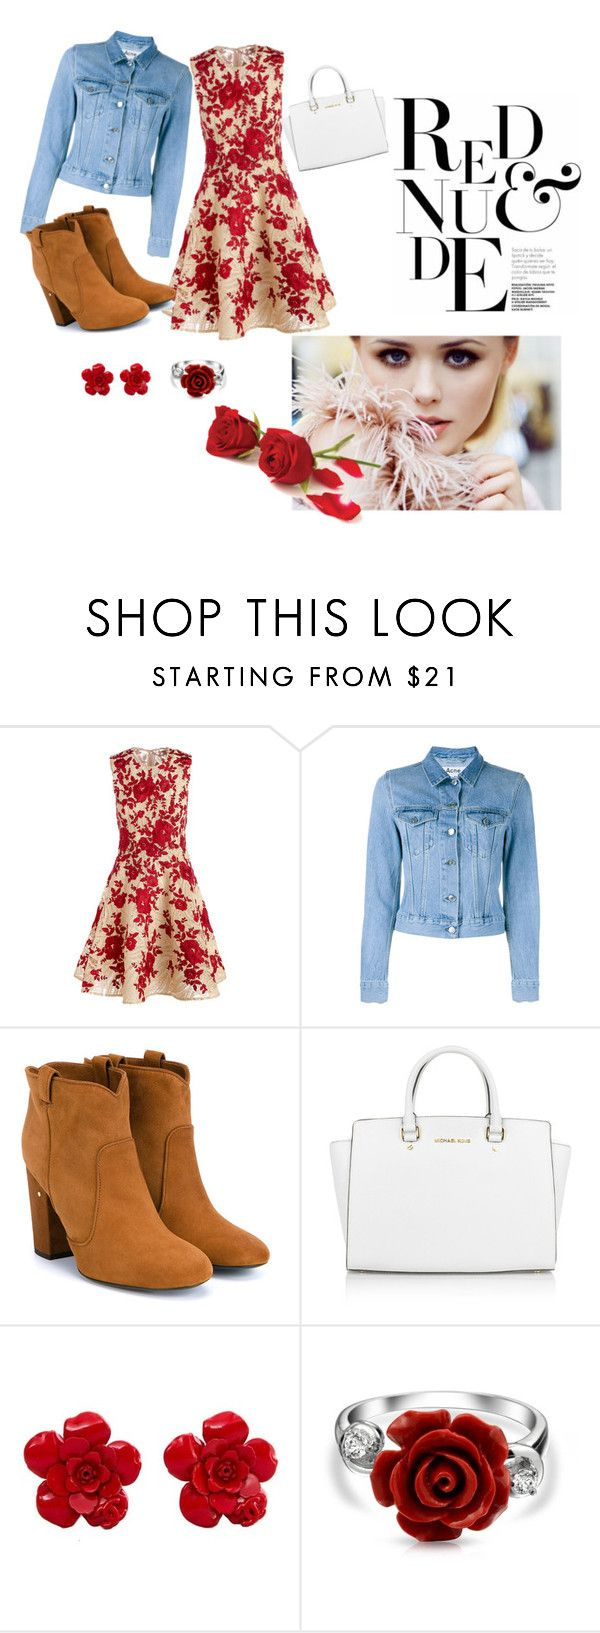 """Red roses"" by love666x on Polyvore featuring moda, Naeem Khan, Acne Studios, Laurence Dacade, Michael Kors, Chanel y Bling Jewelry"